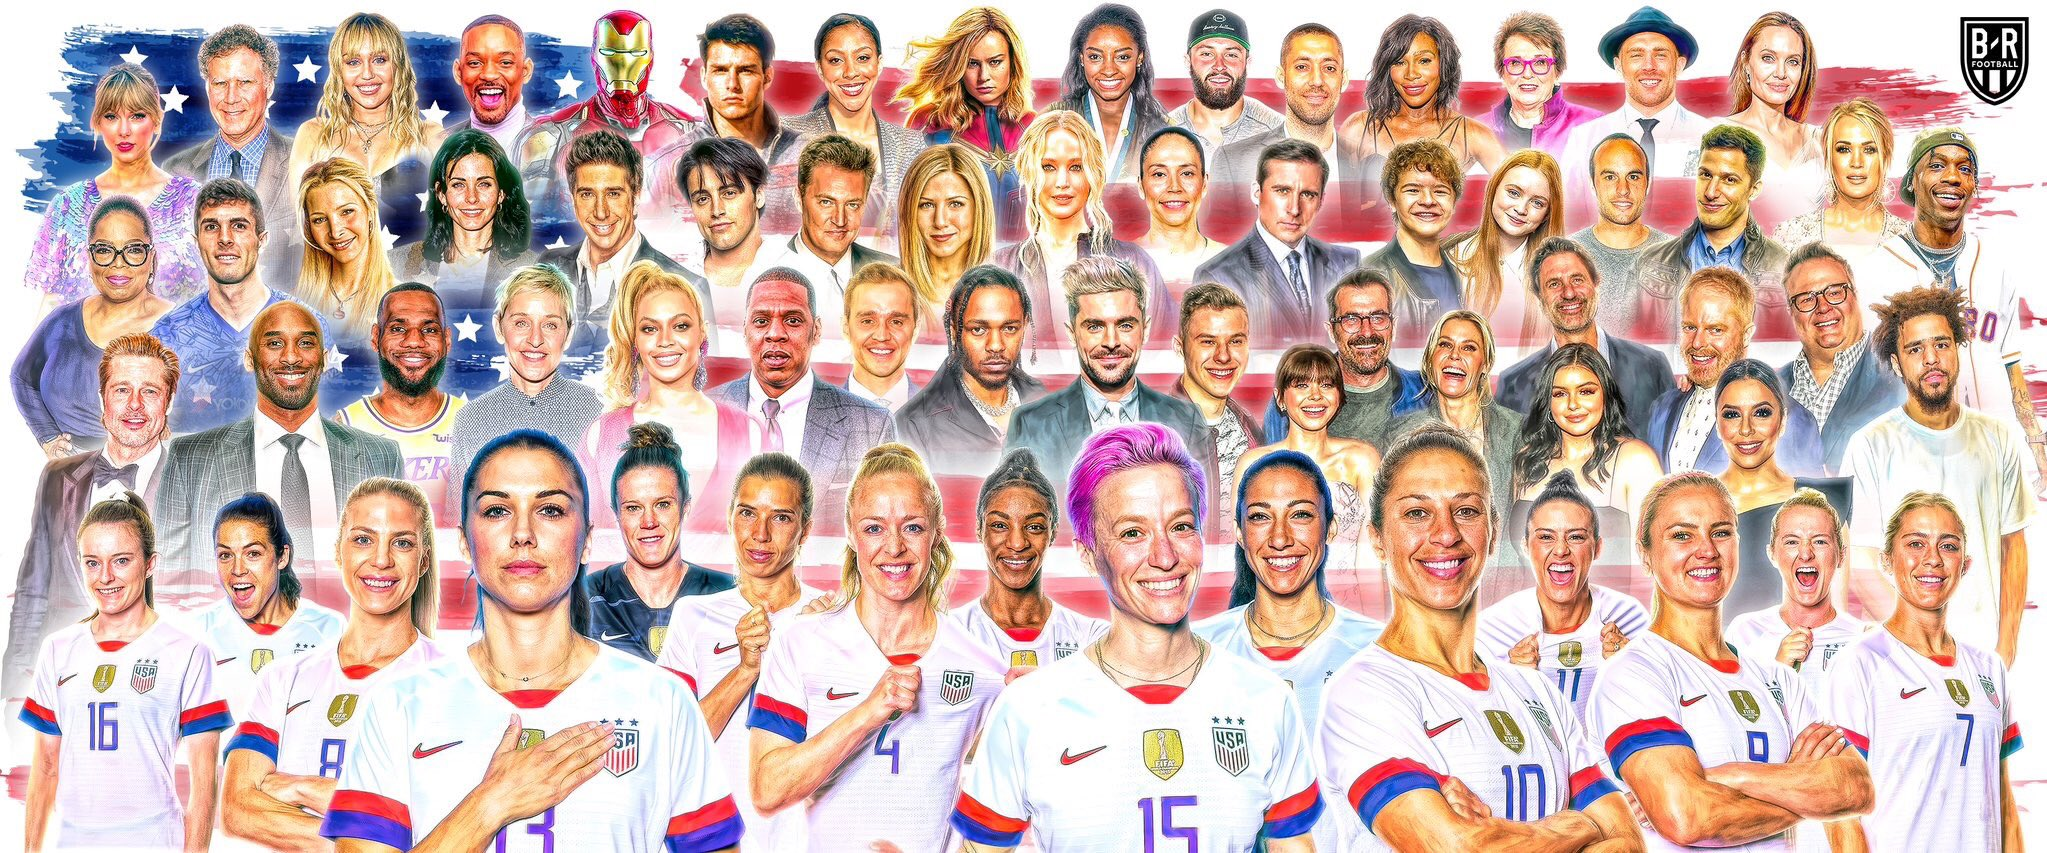 The women who won the World Cup want to be taken seriously, Bleacher Report thinks they're as good as 'Top Gun'